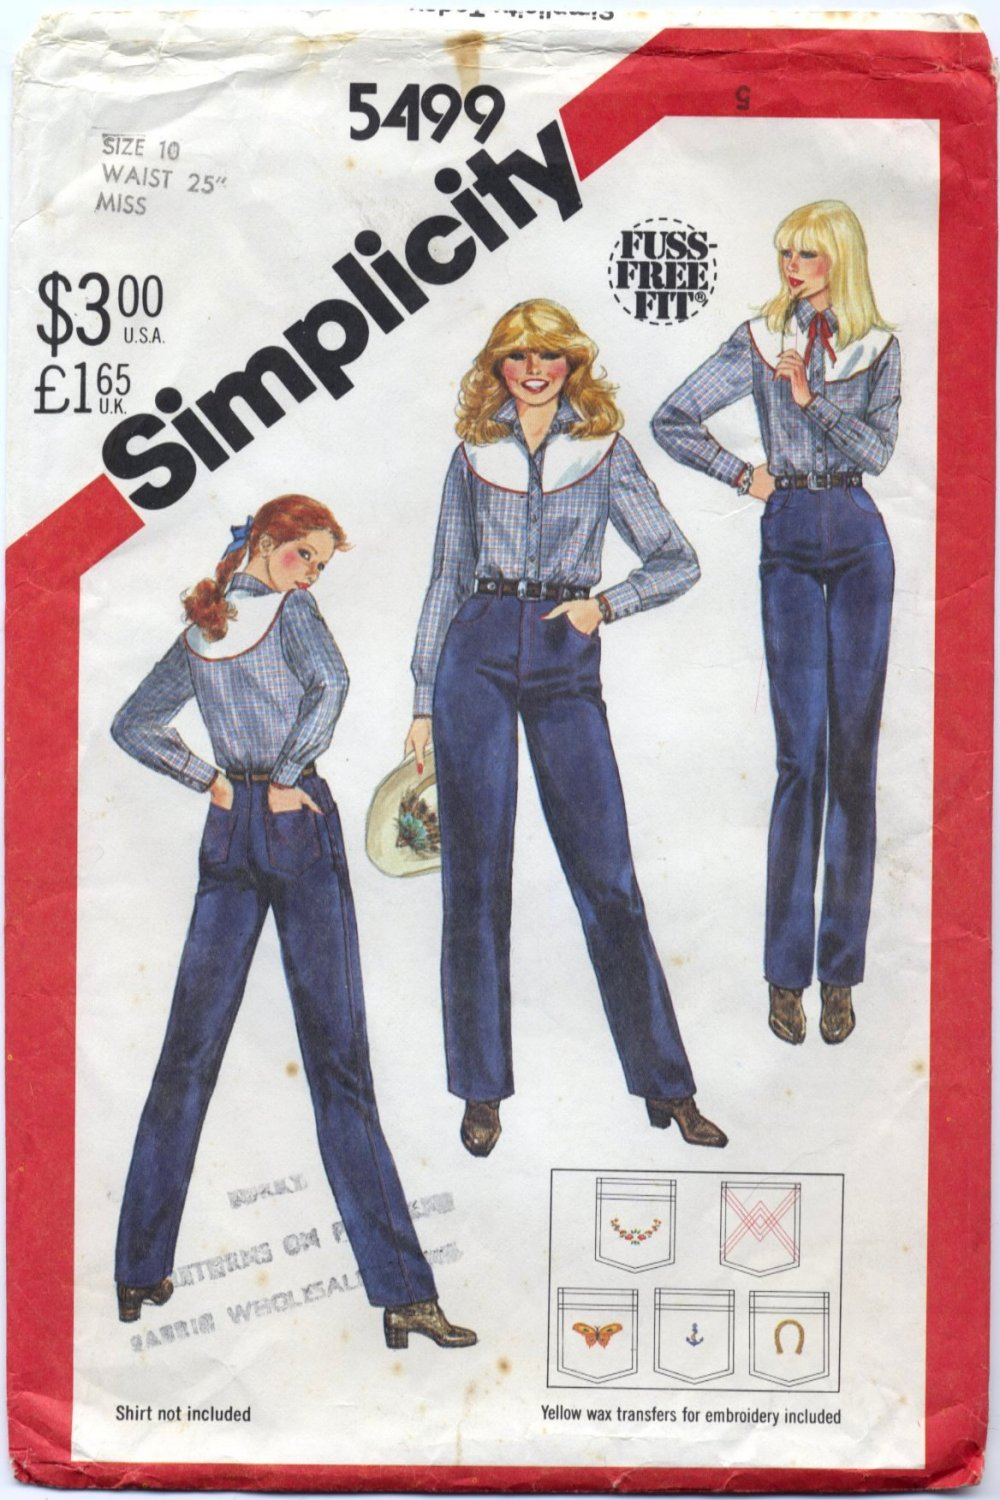 "Simplicity 5499 Close-Fit Jeans - - Sewing Pattern Misses' 10 Waist 25"" Unused Transfers Included"